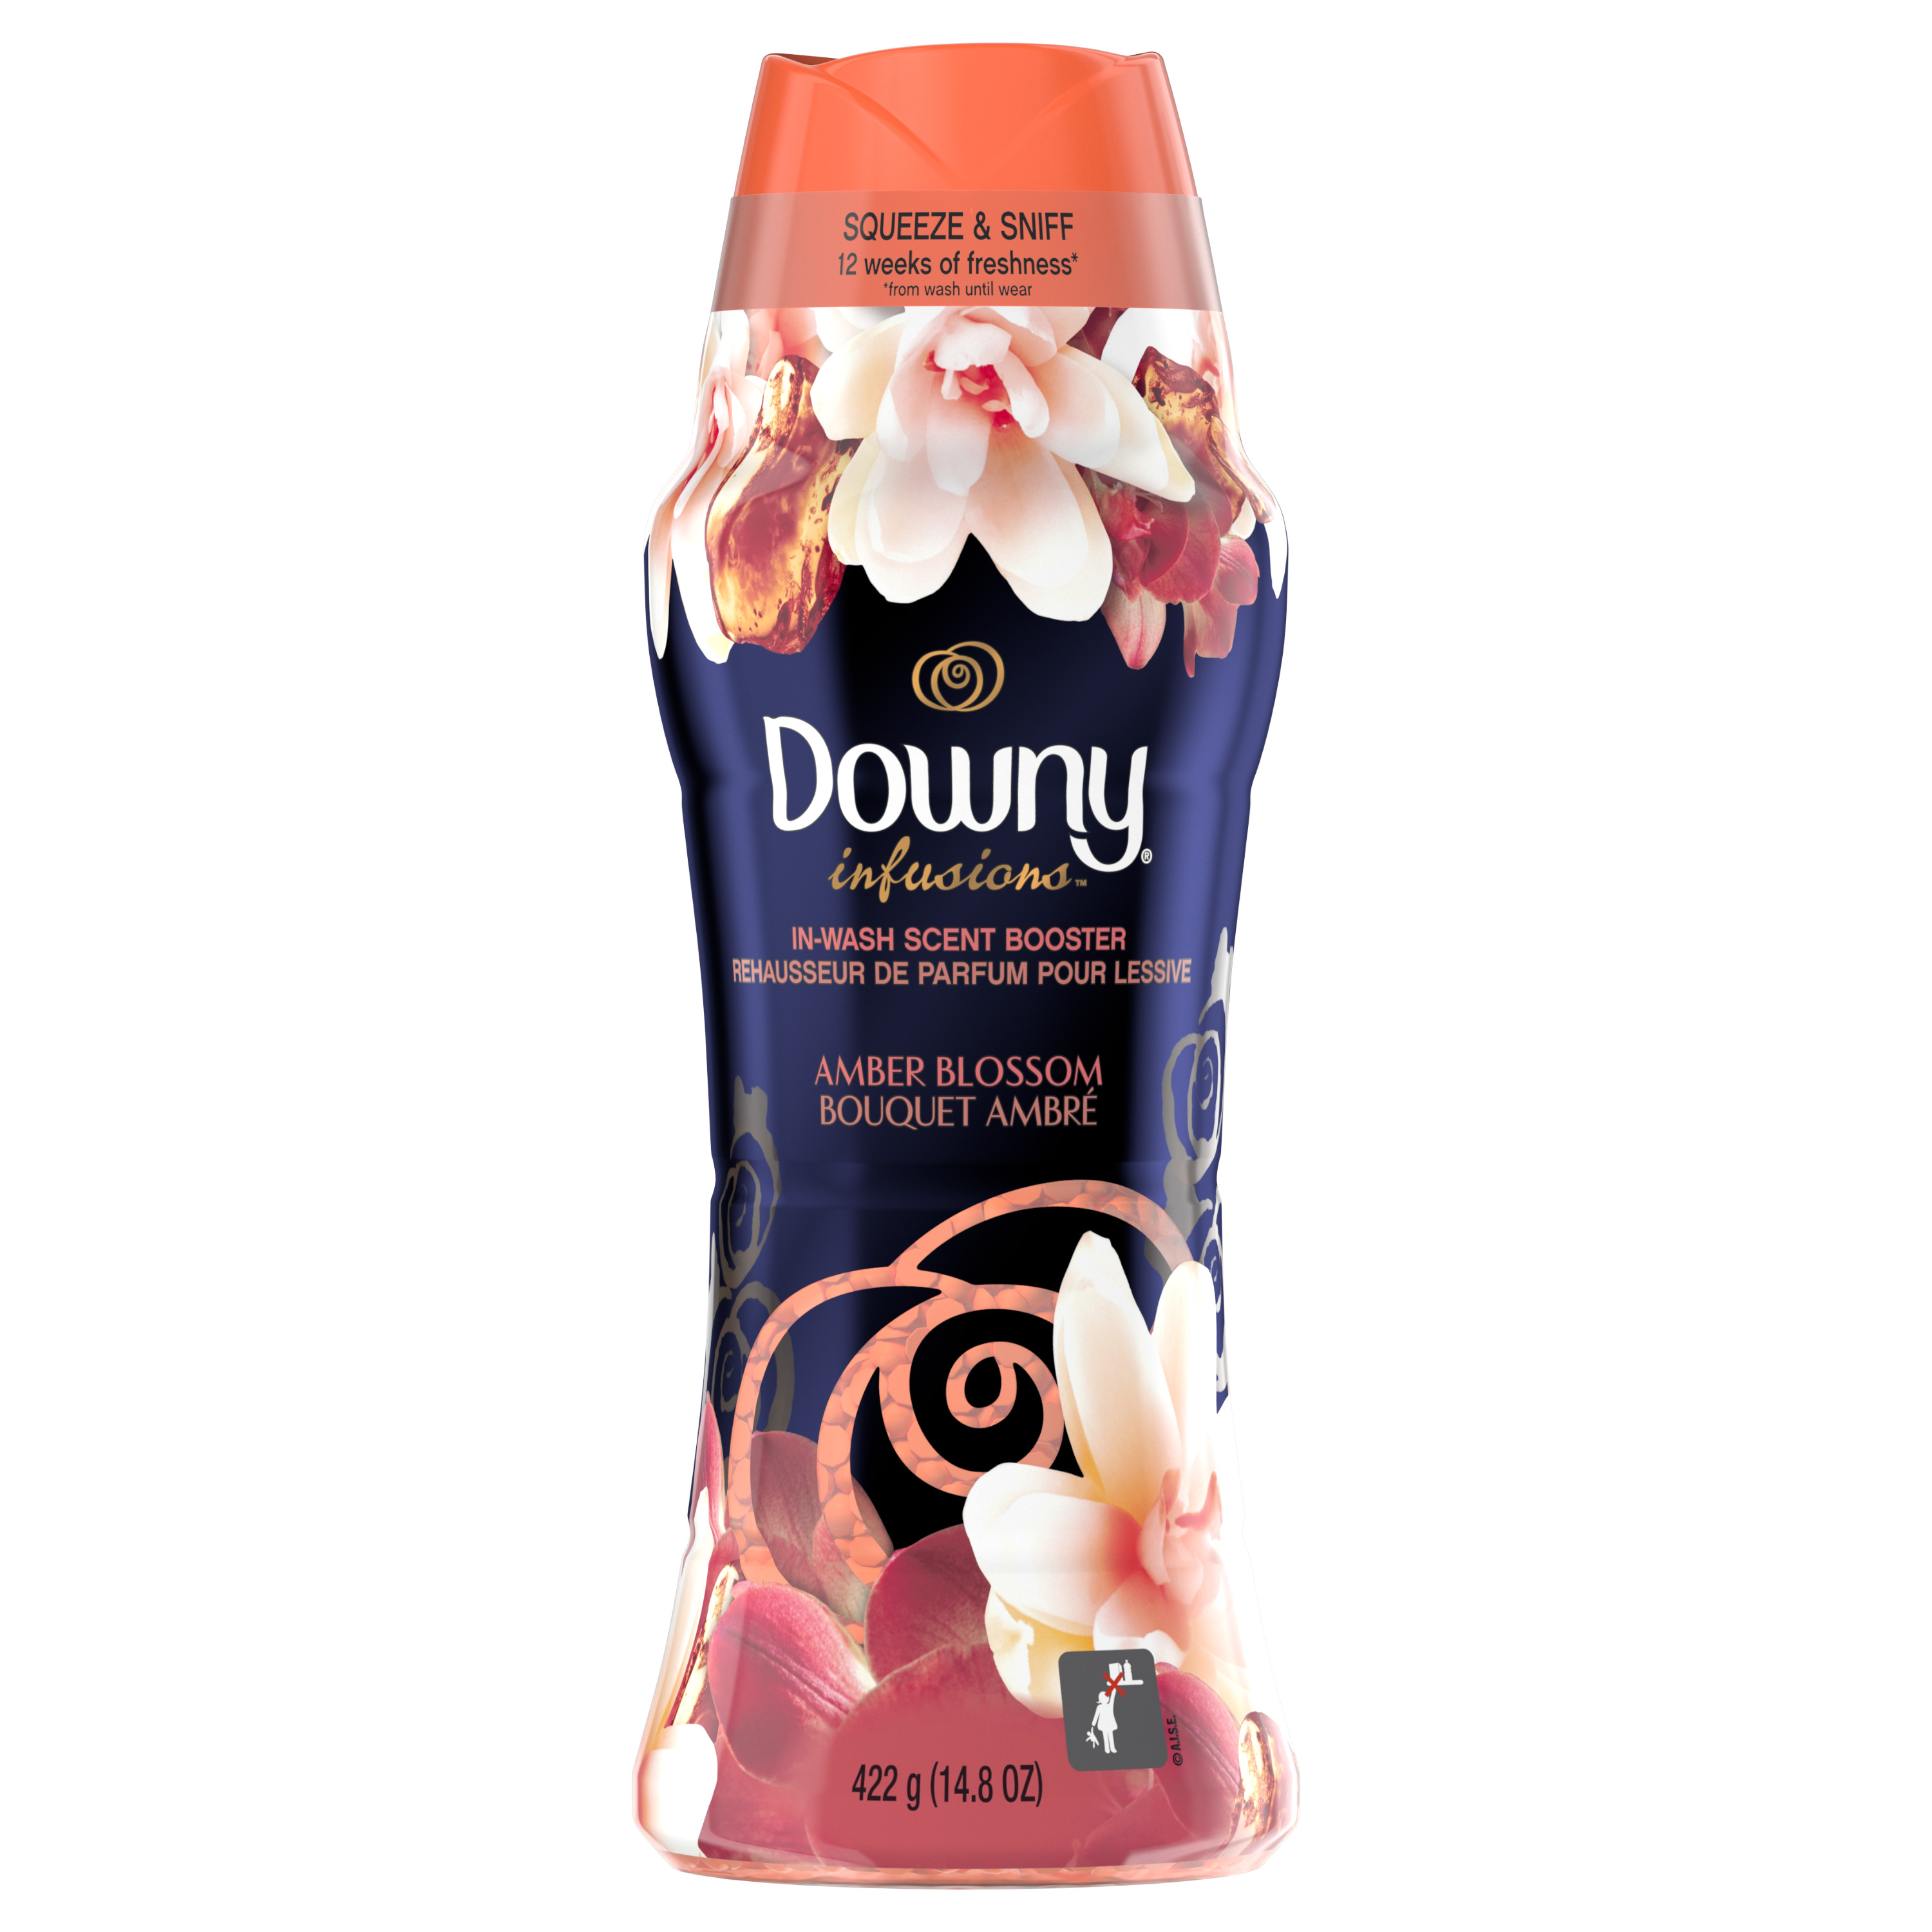 Downy Infusions In-Wash Scent Booster Beads, Amber Blossom, 14.8 oz